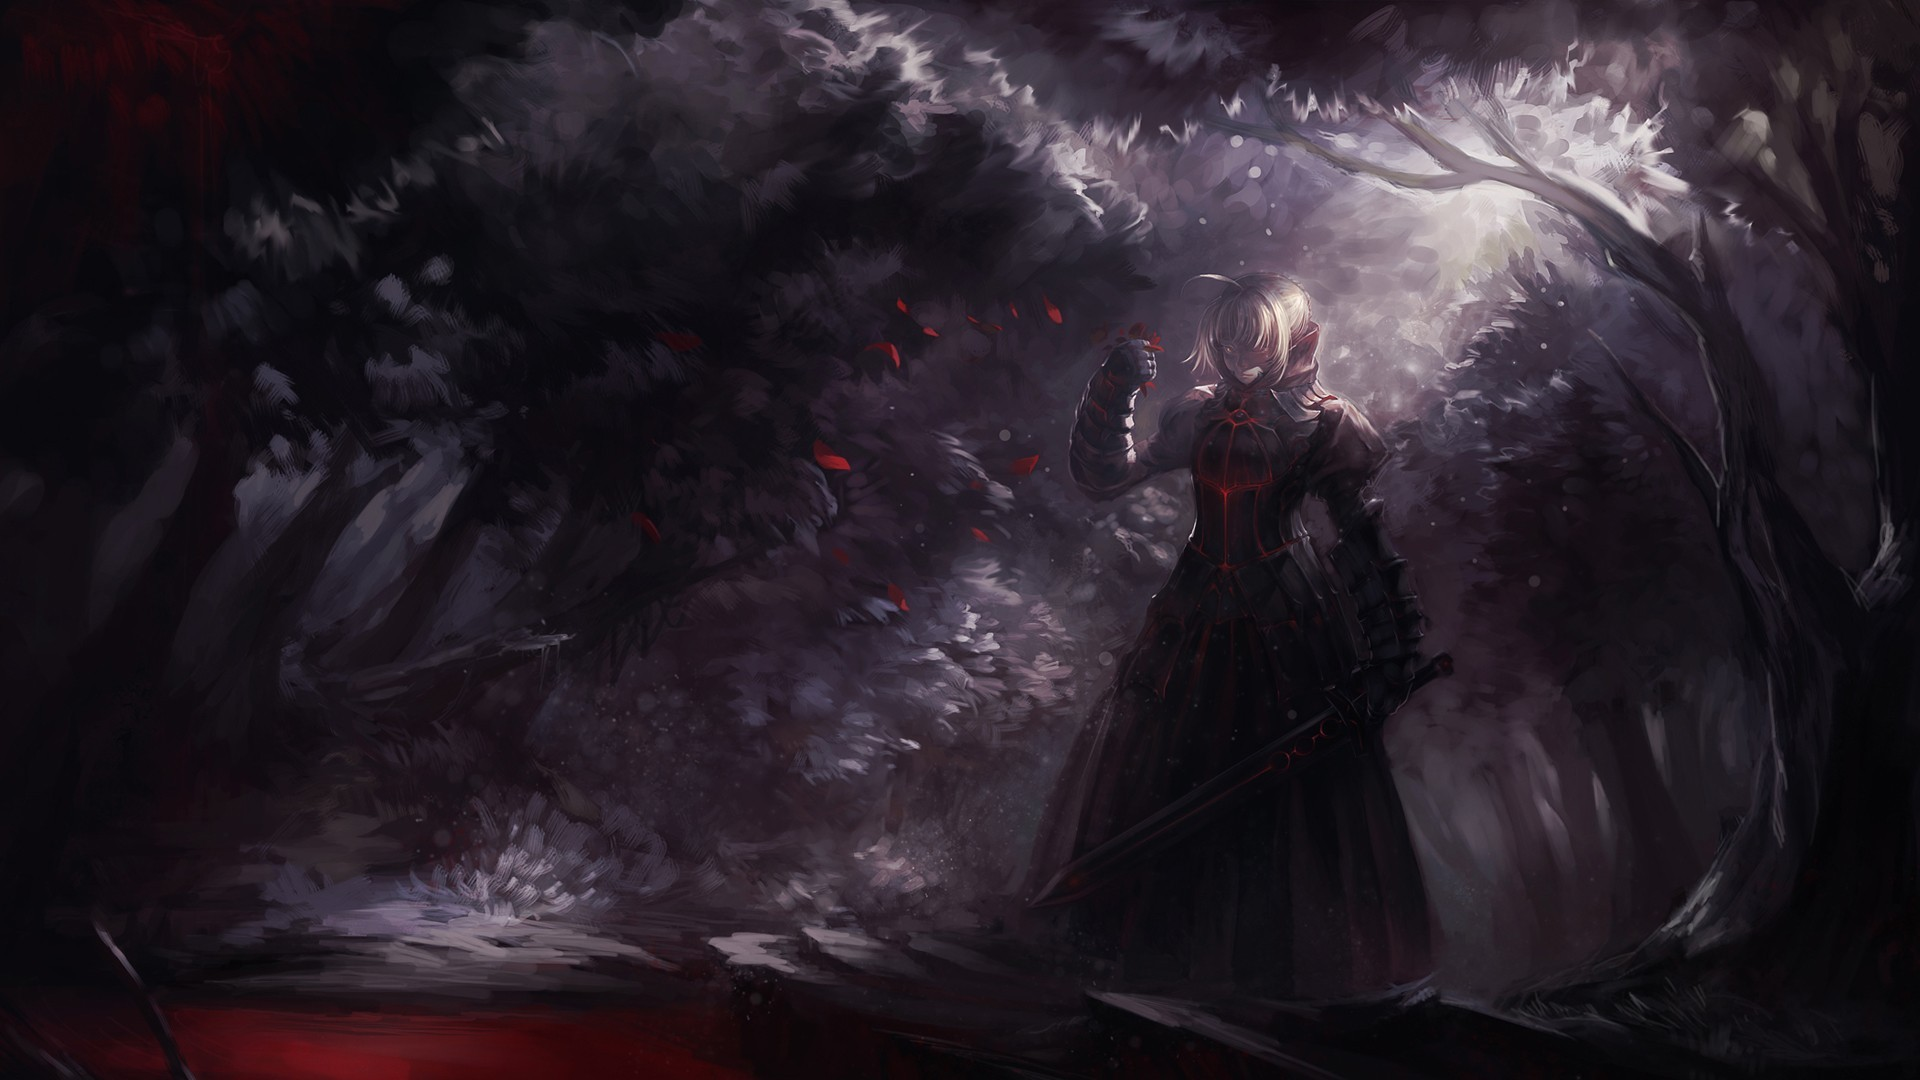 Saber Alter Fate Stay Night Wallpaper Pictures 1920x1080